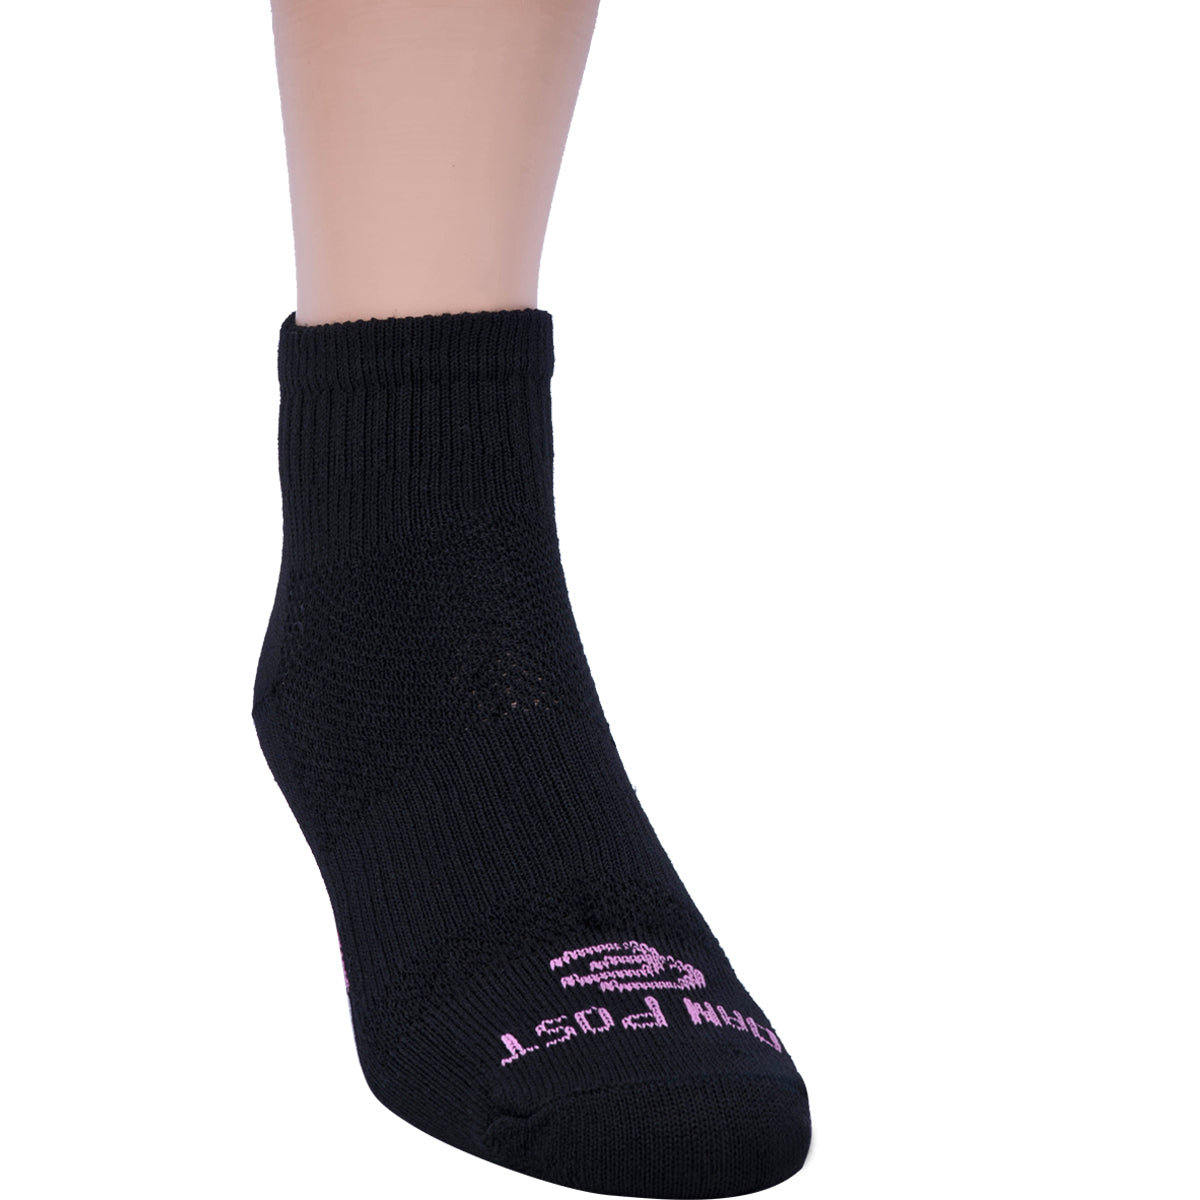 QUARTERS LITE SOCKS - Dan Post Boots